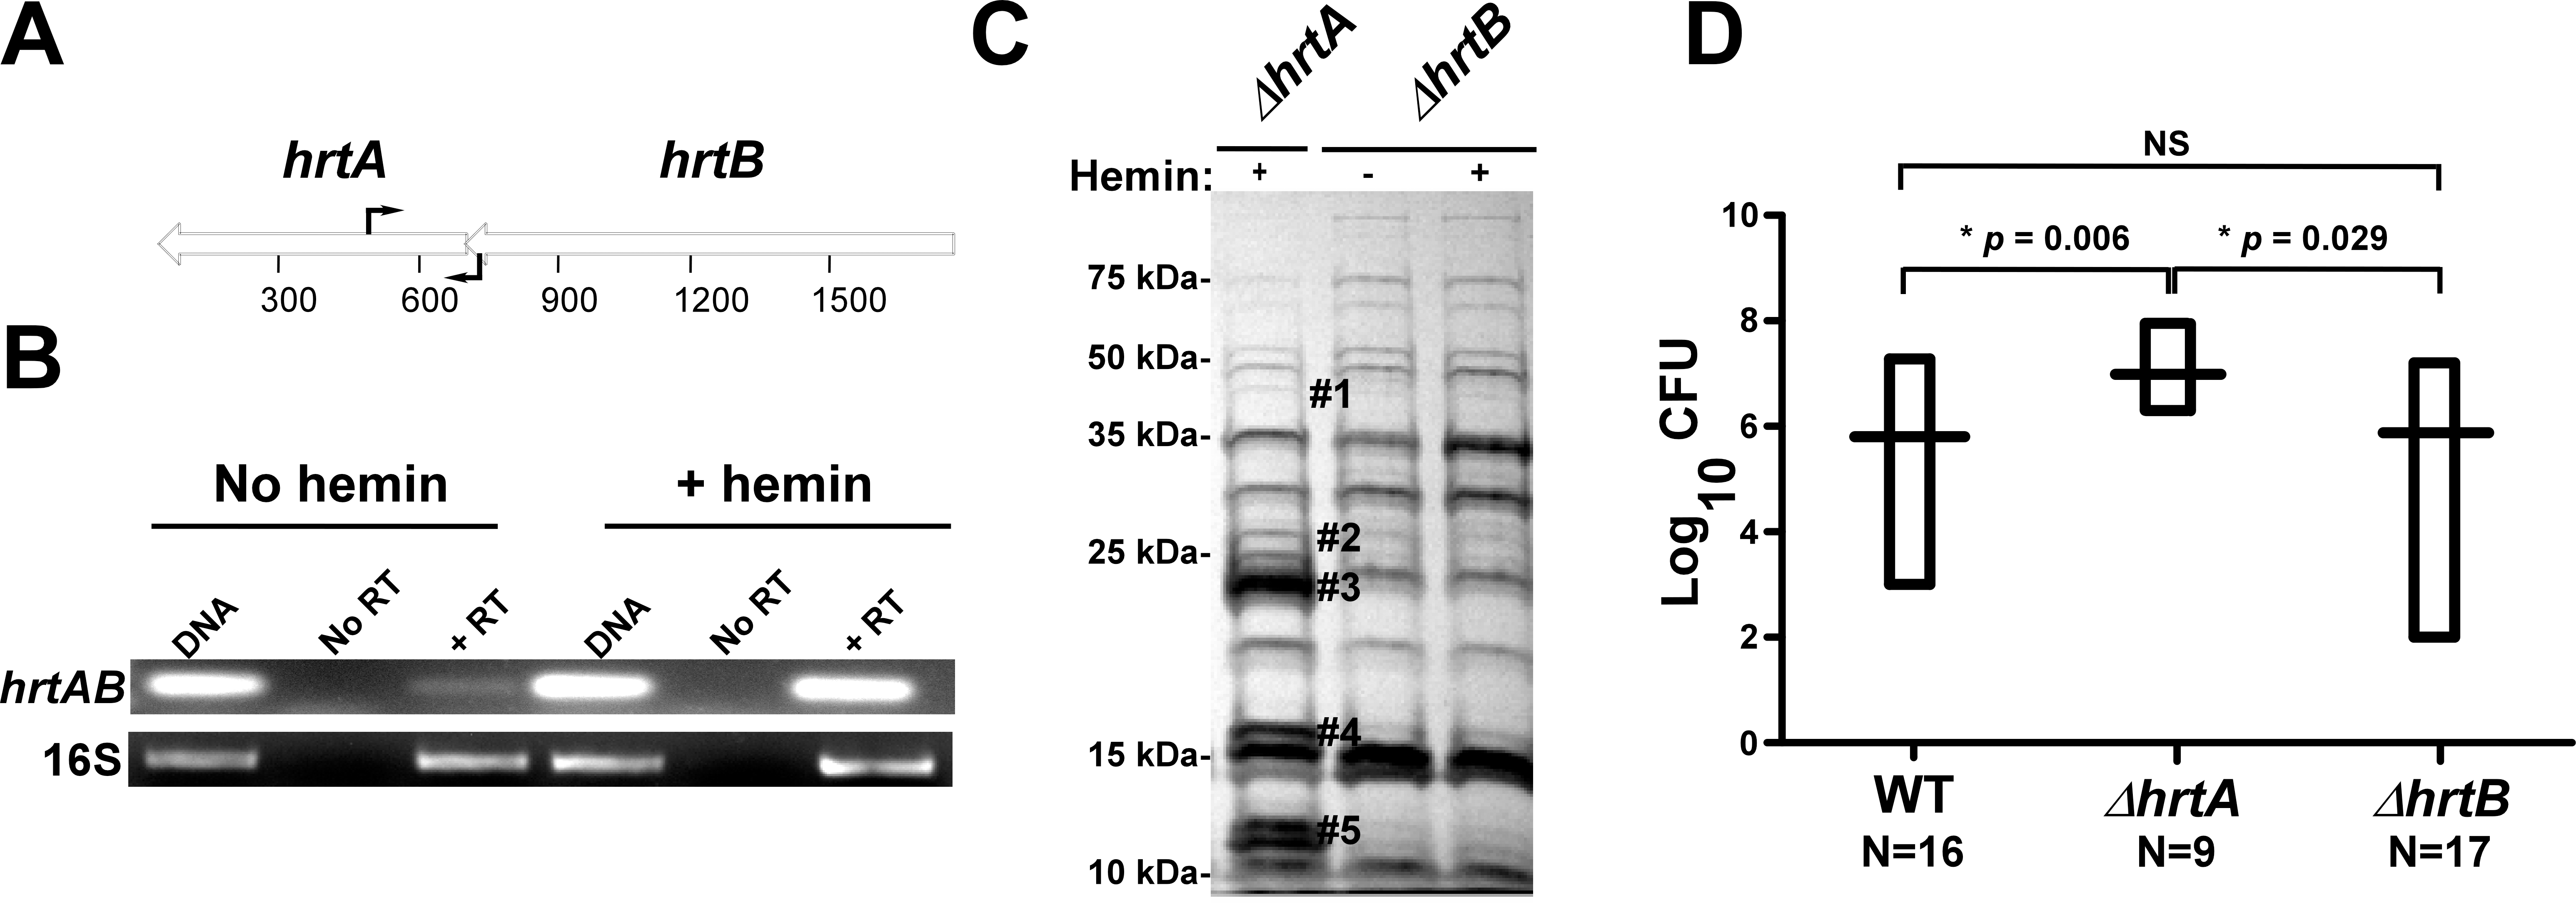 Loss of HrtB alone does not affect protein secretion or virulence in mice.